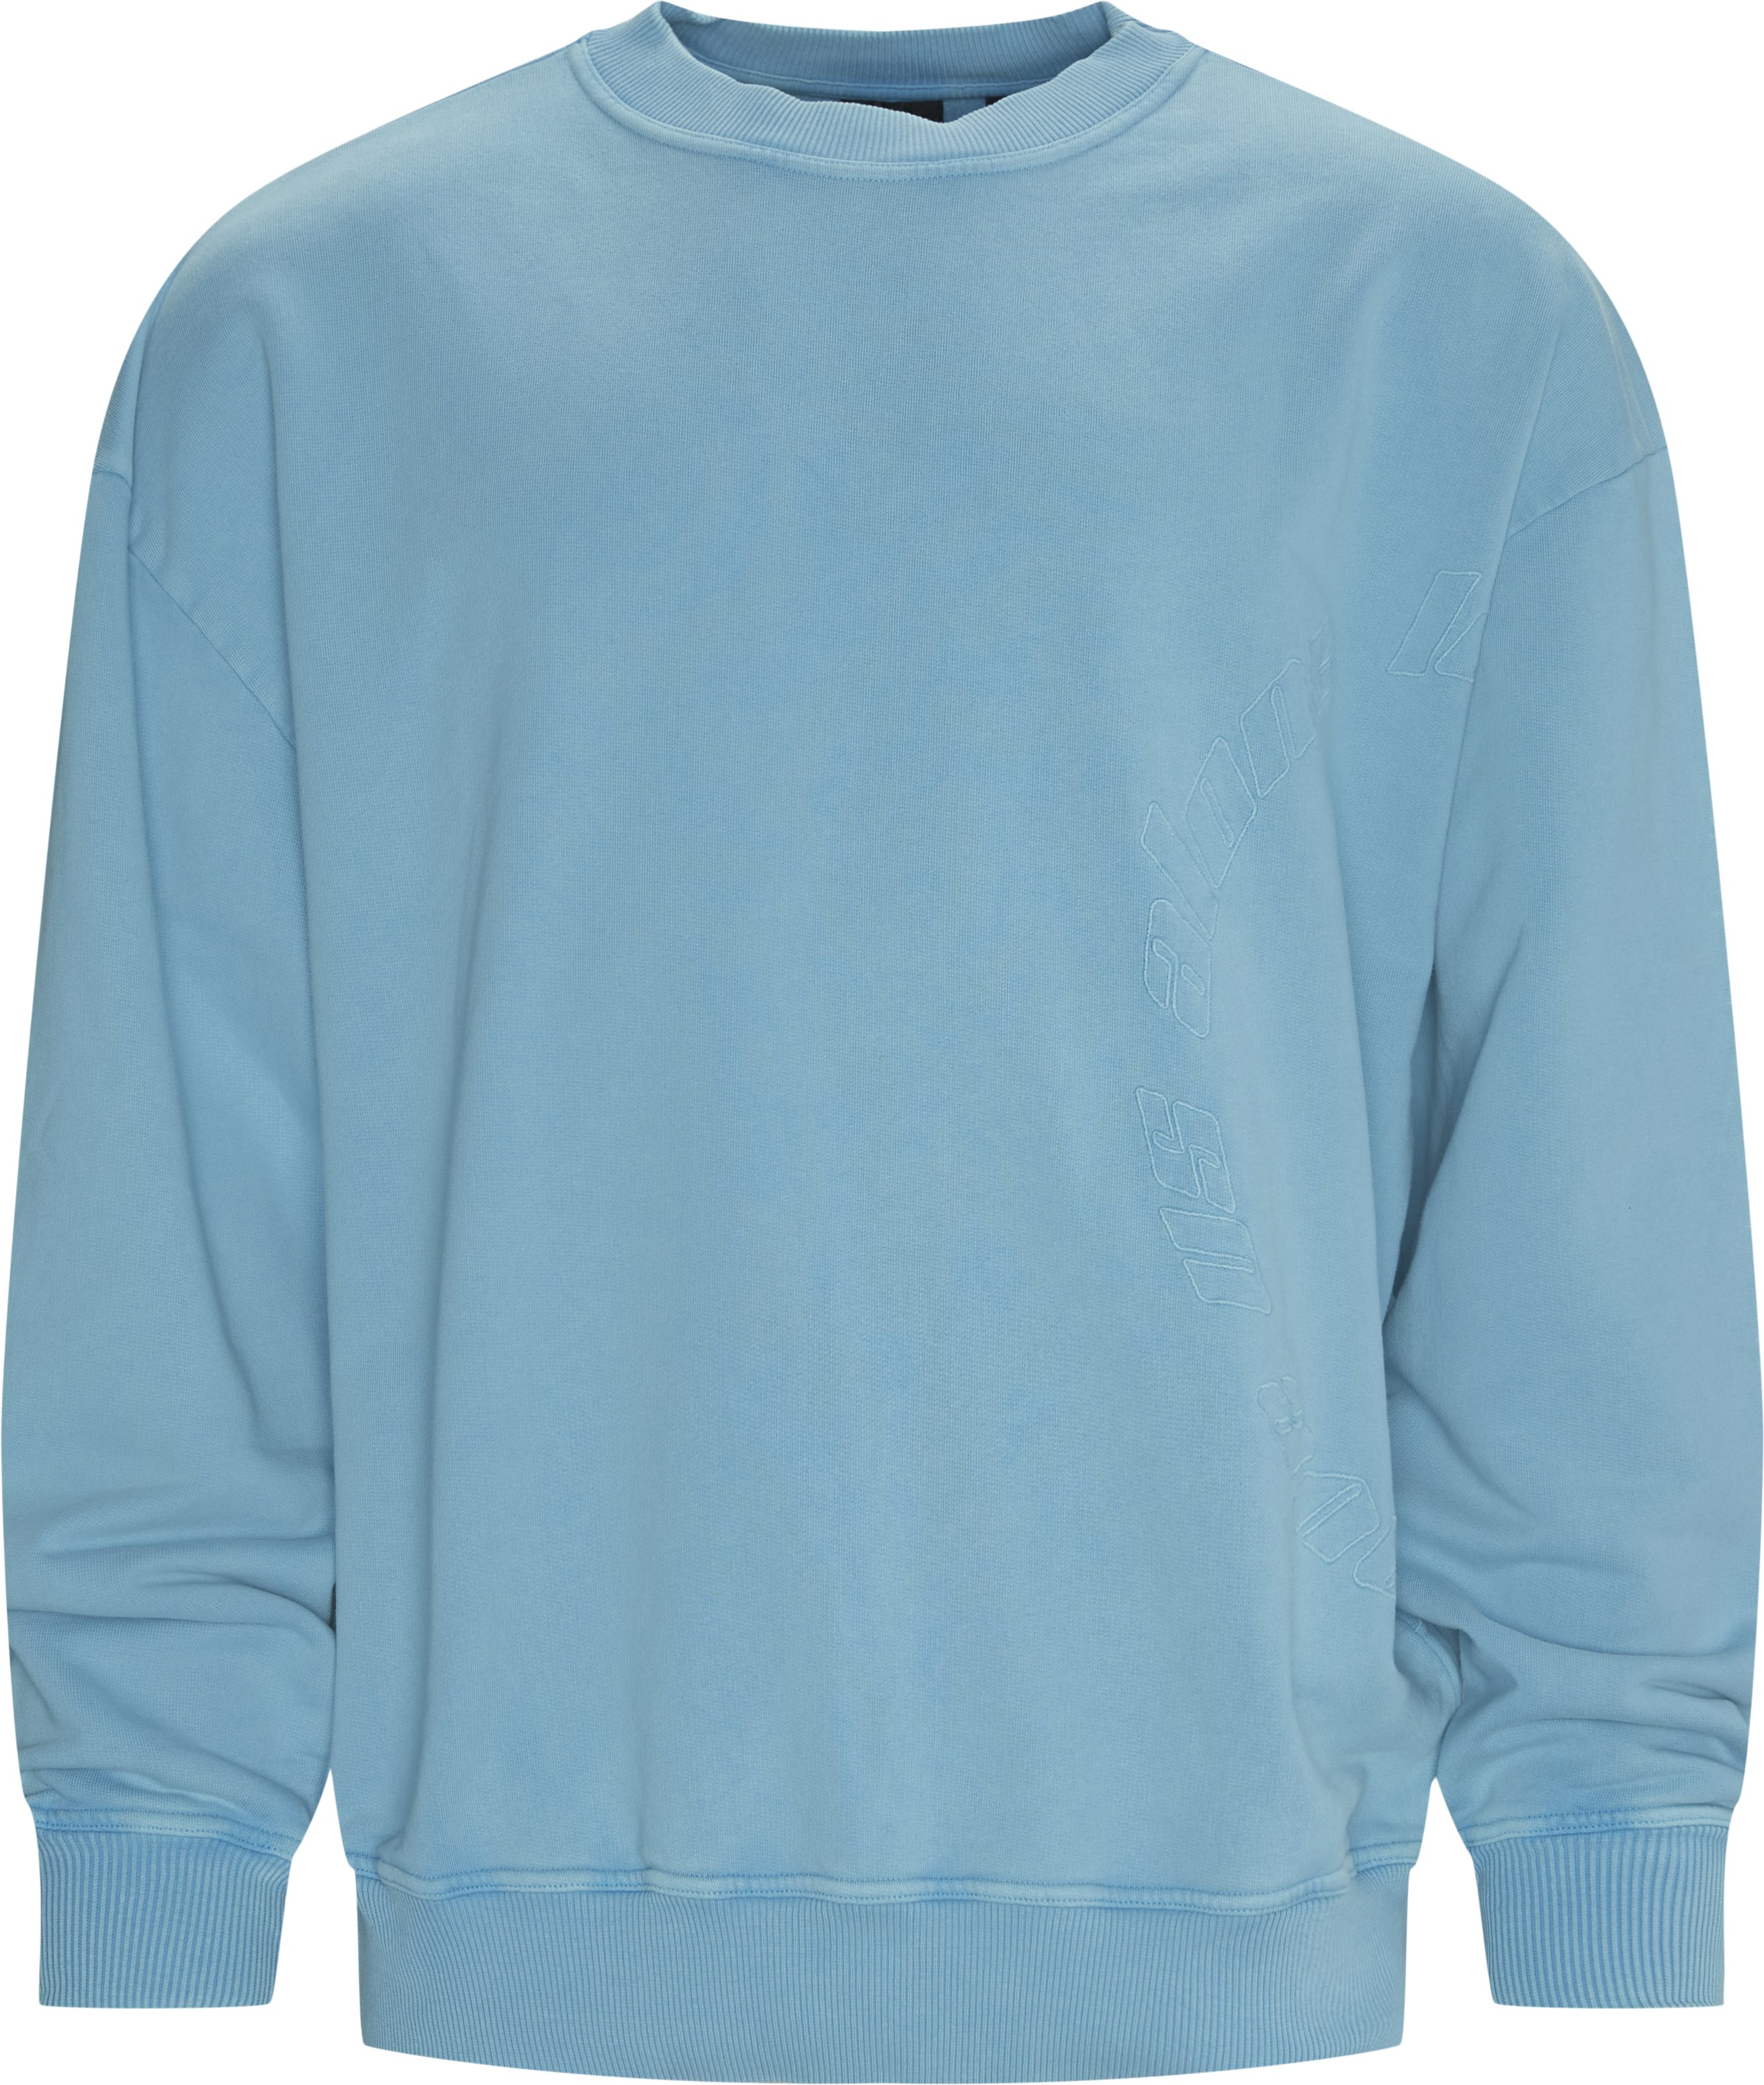 Kerspla Sweatshirt - Sweatshirts - Regular fit - Blå